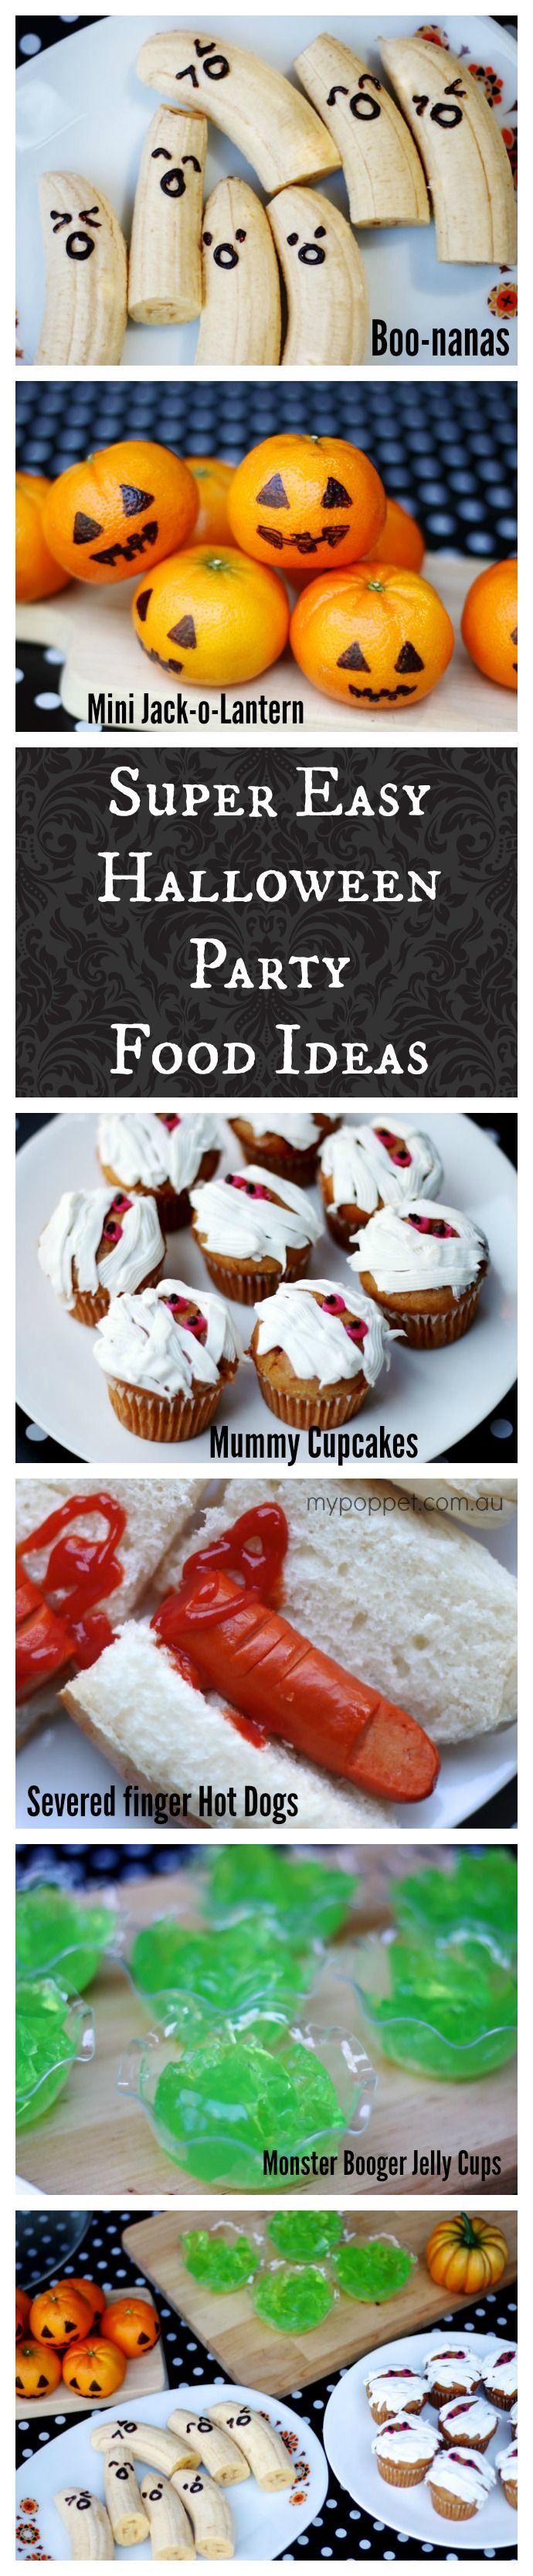 The 37 best images about EVENTS - Kids Party Ideas on Pinterest ...